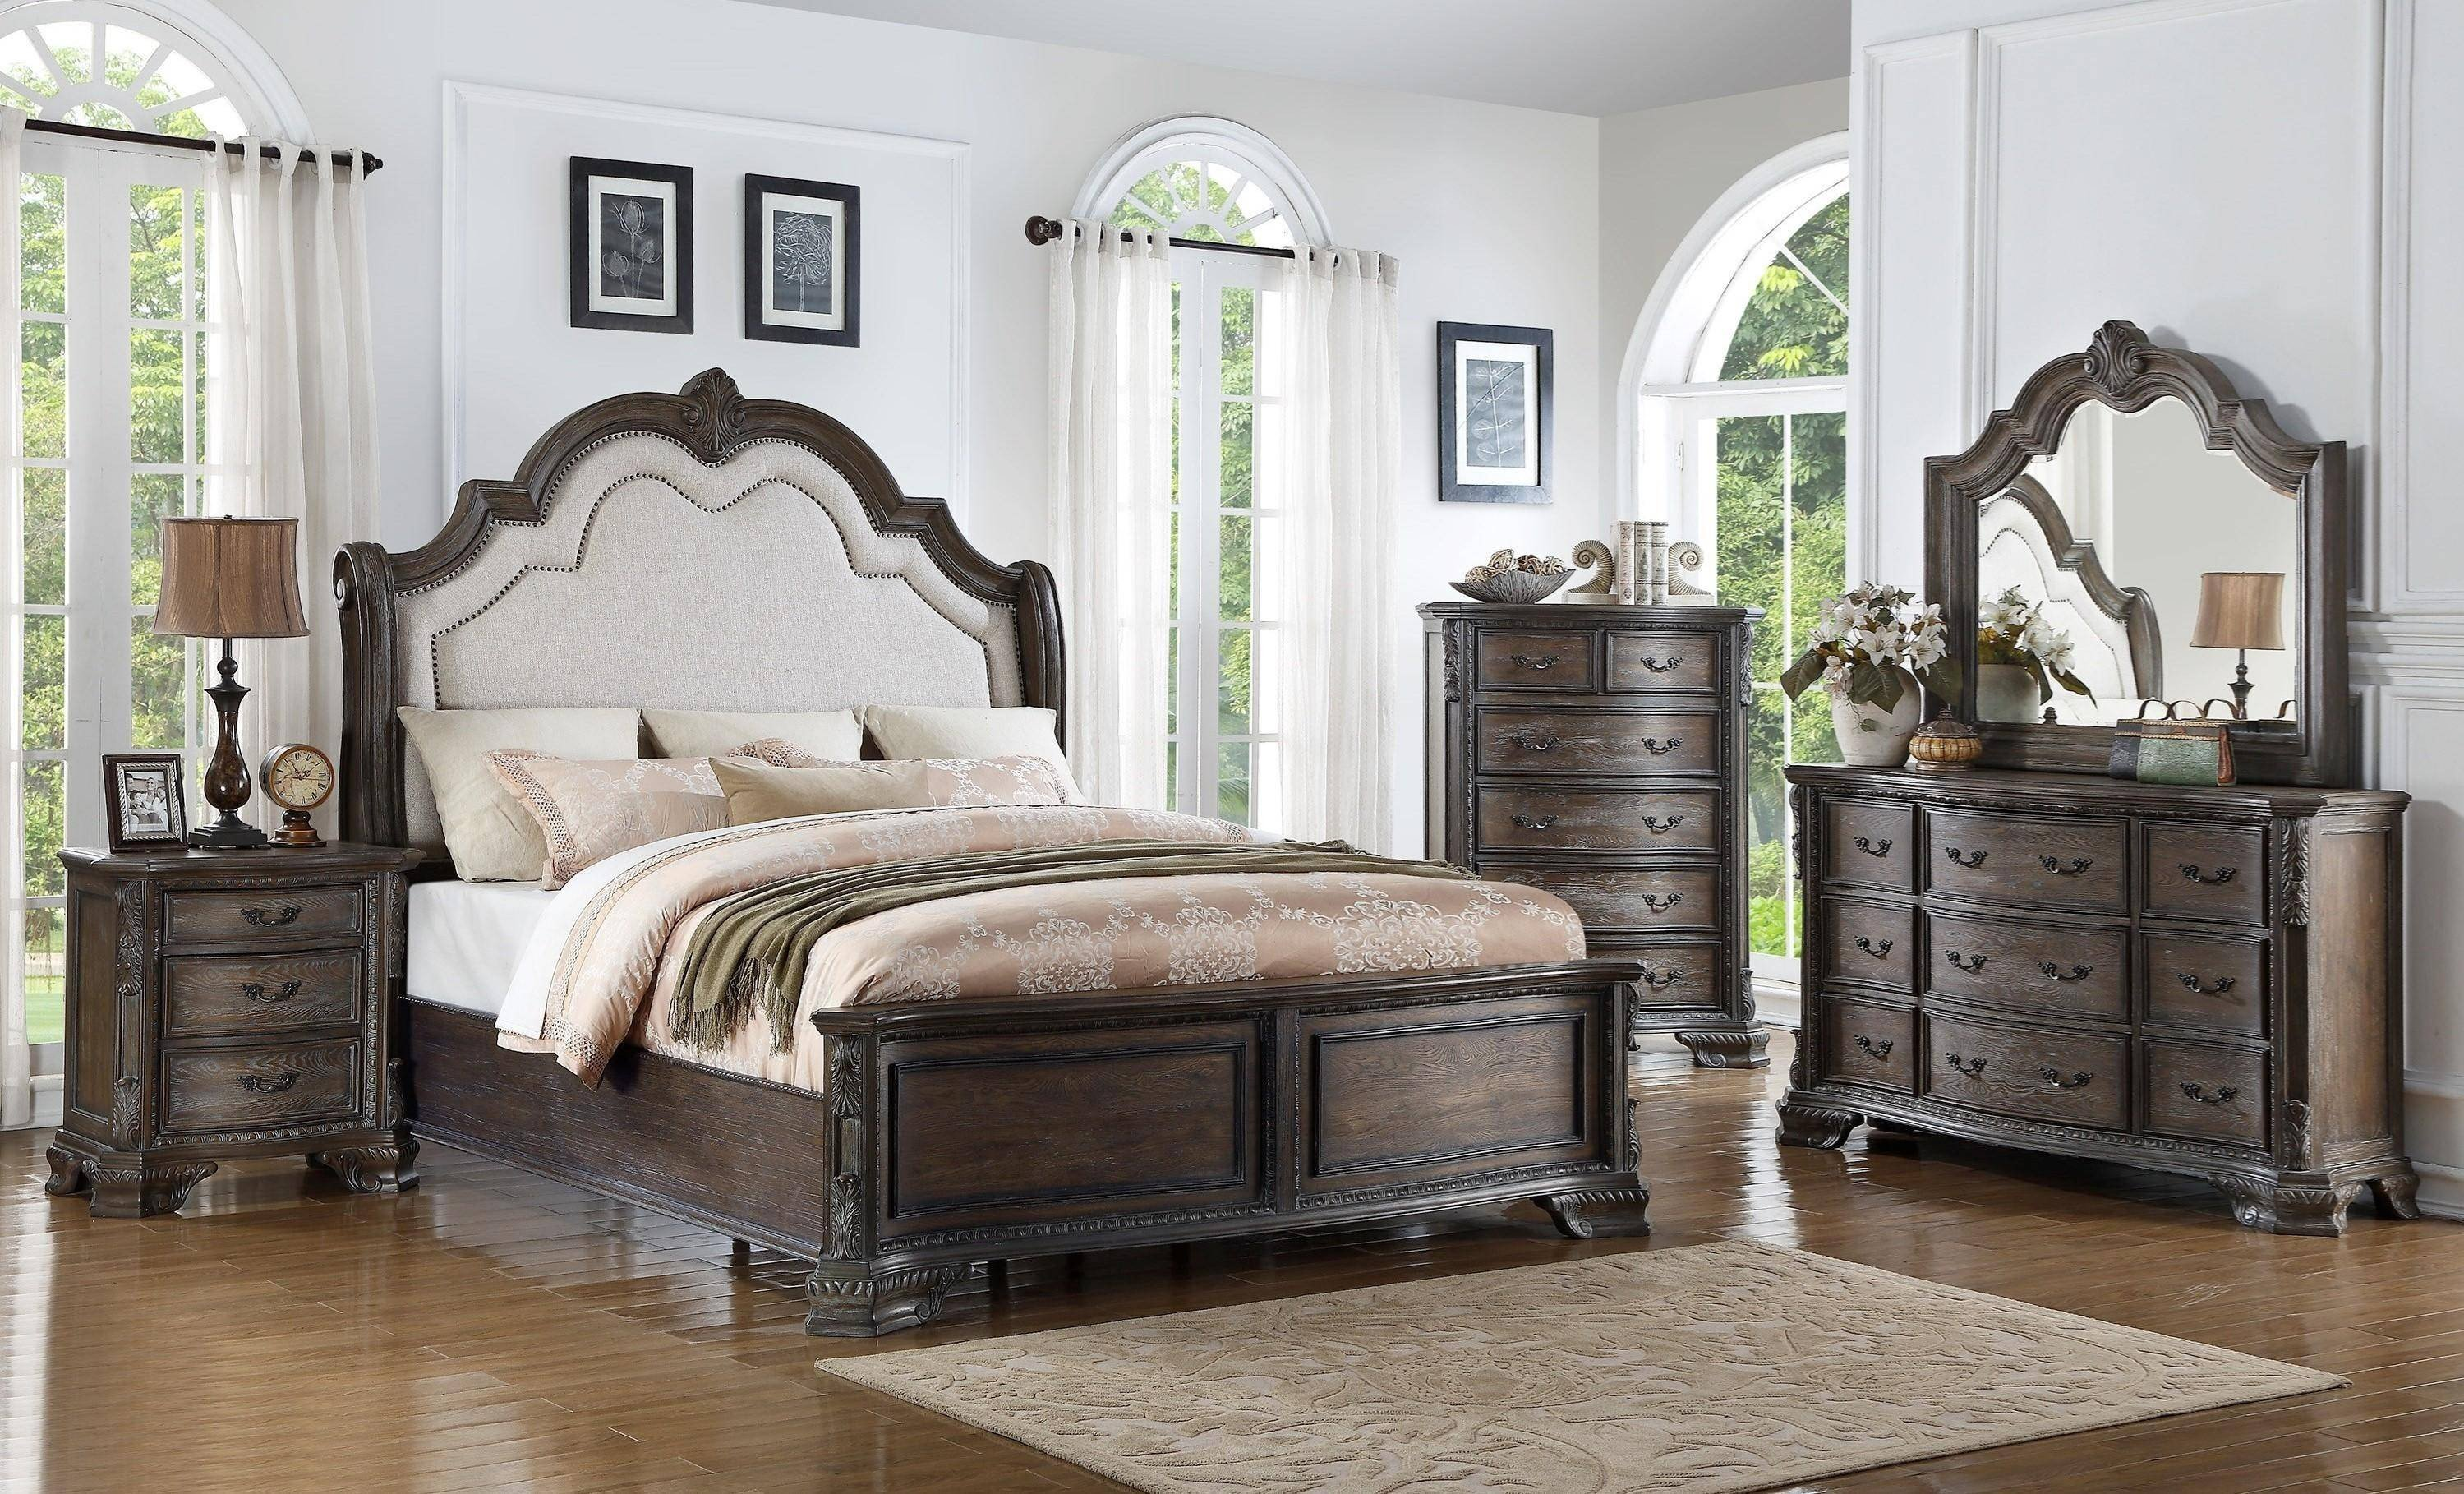 Full Bedroom Furniture Set New Crown Mark B1120 Sheffield Queen Panel Bed In Gray Fabric